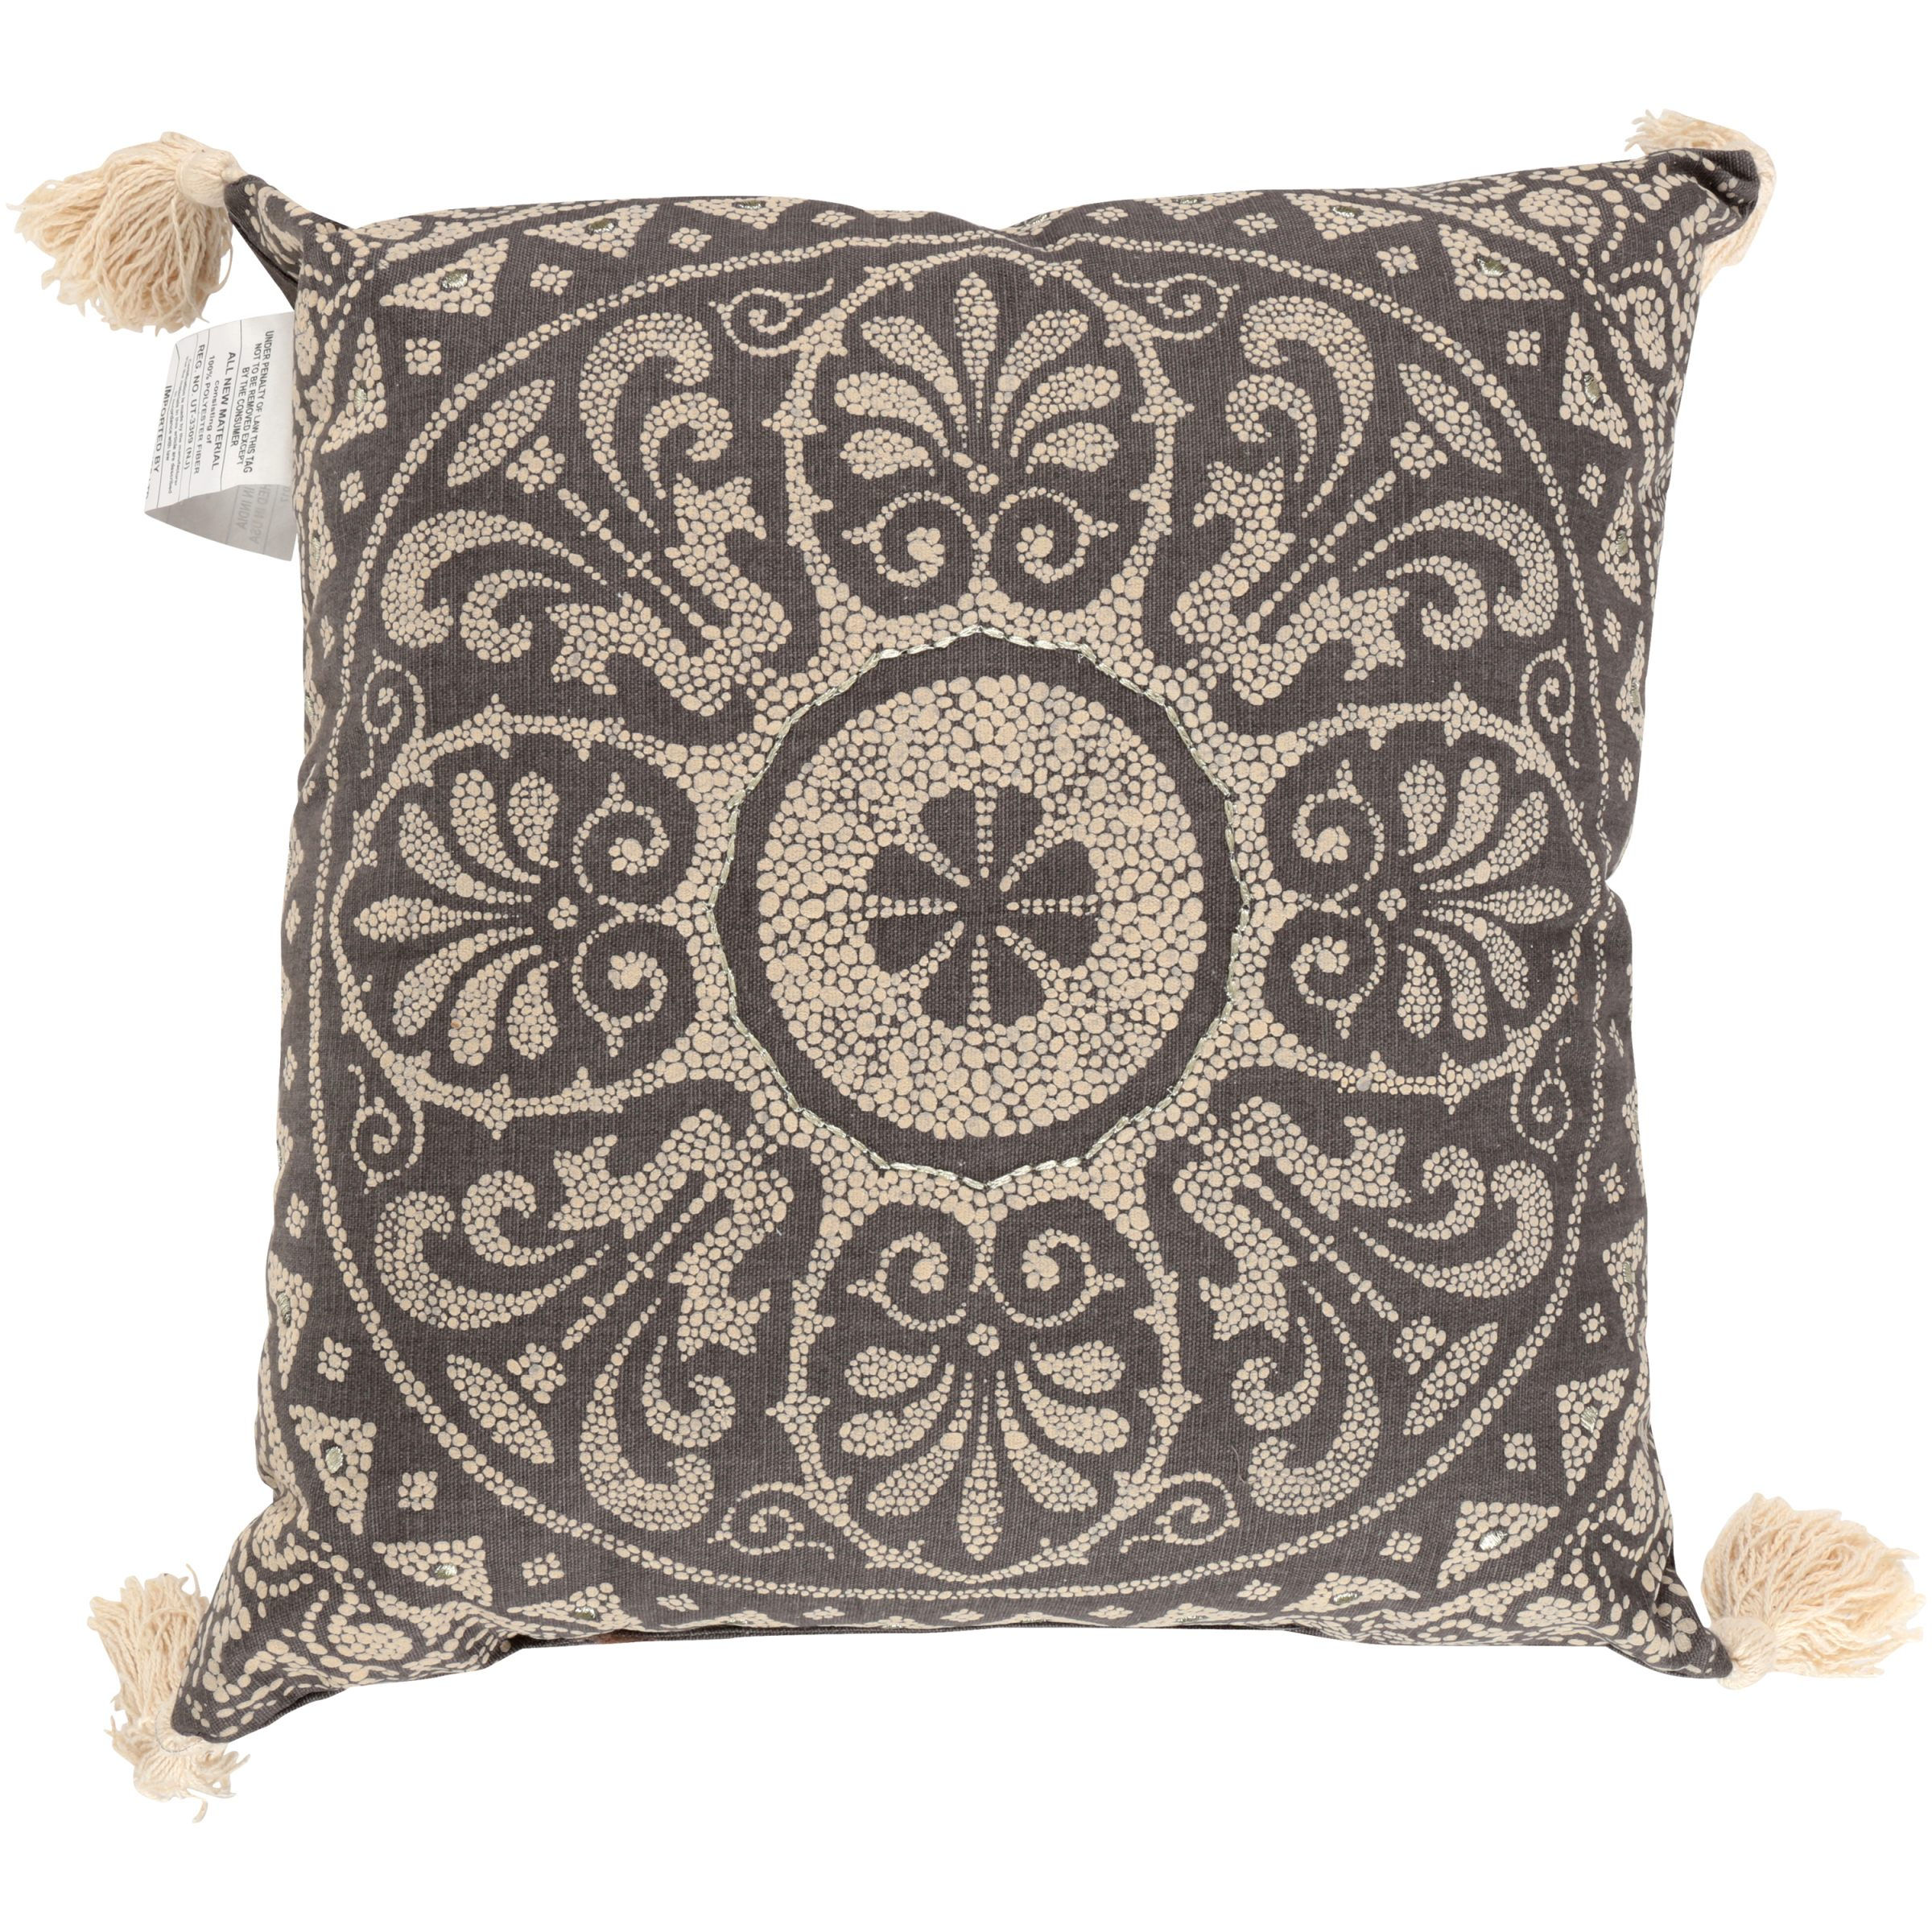 Better Homes & Gardens® Taupe Medallion Pillow with Tassels